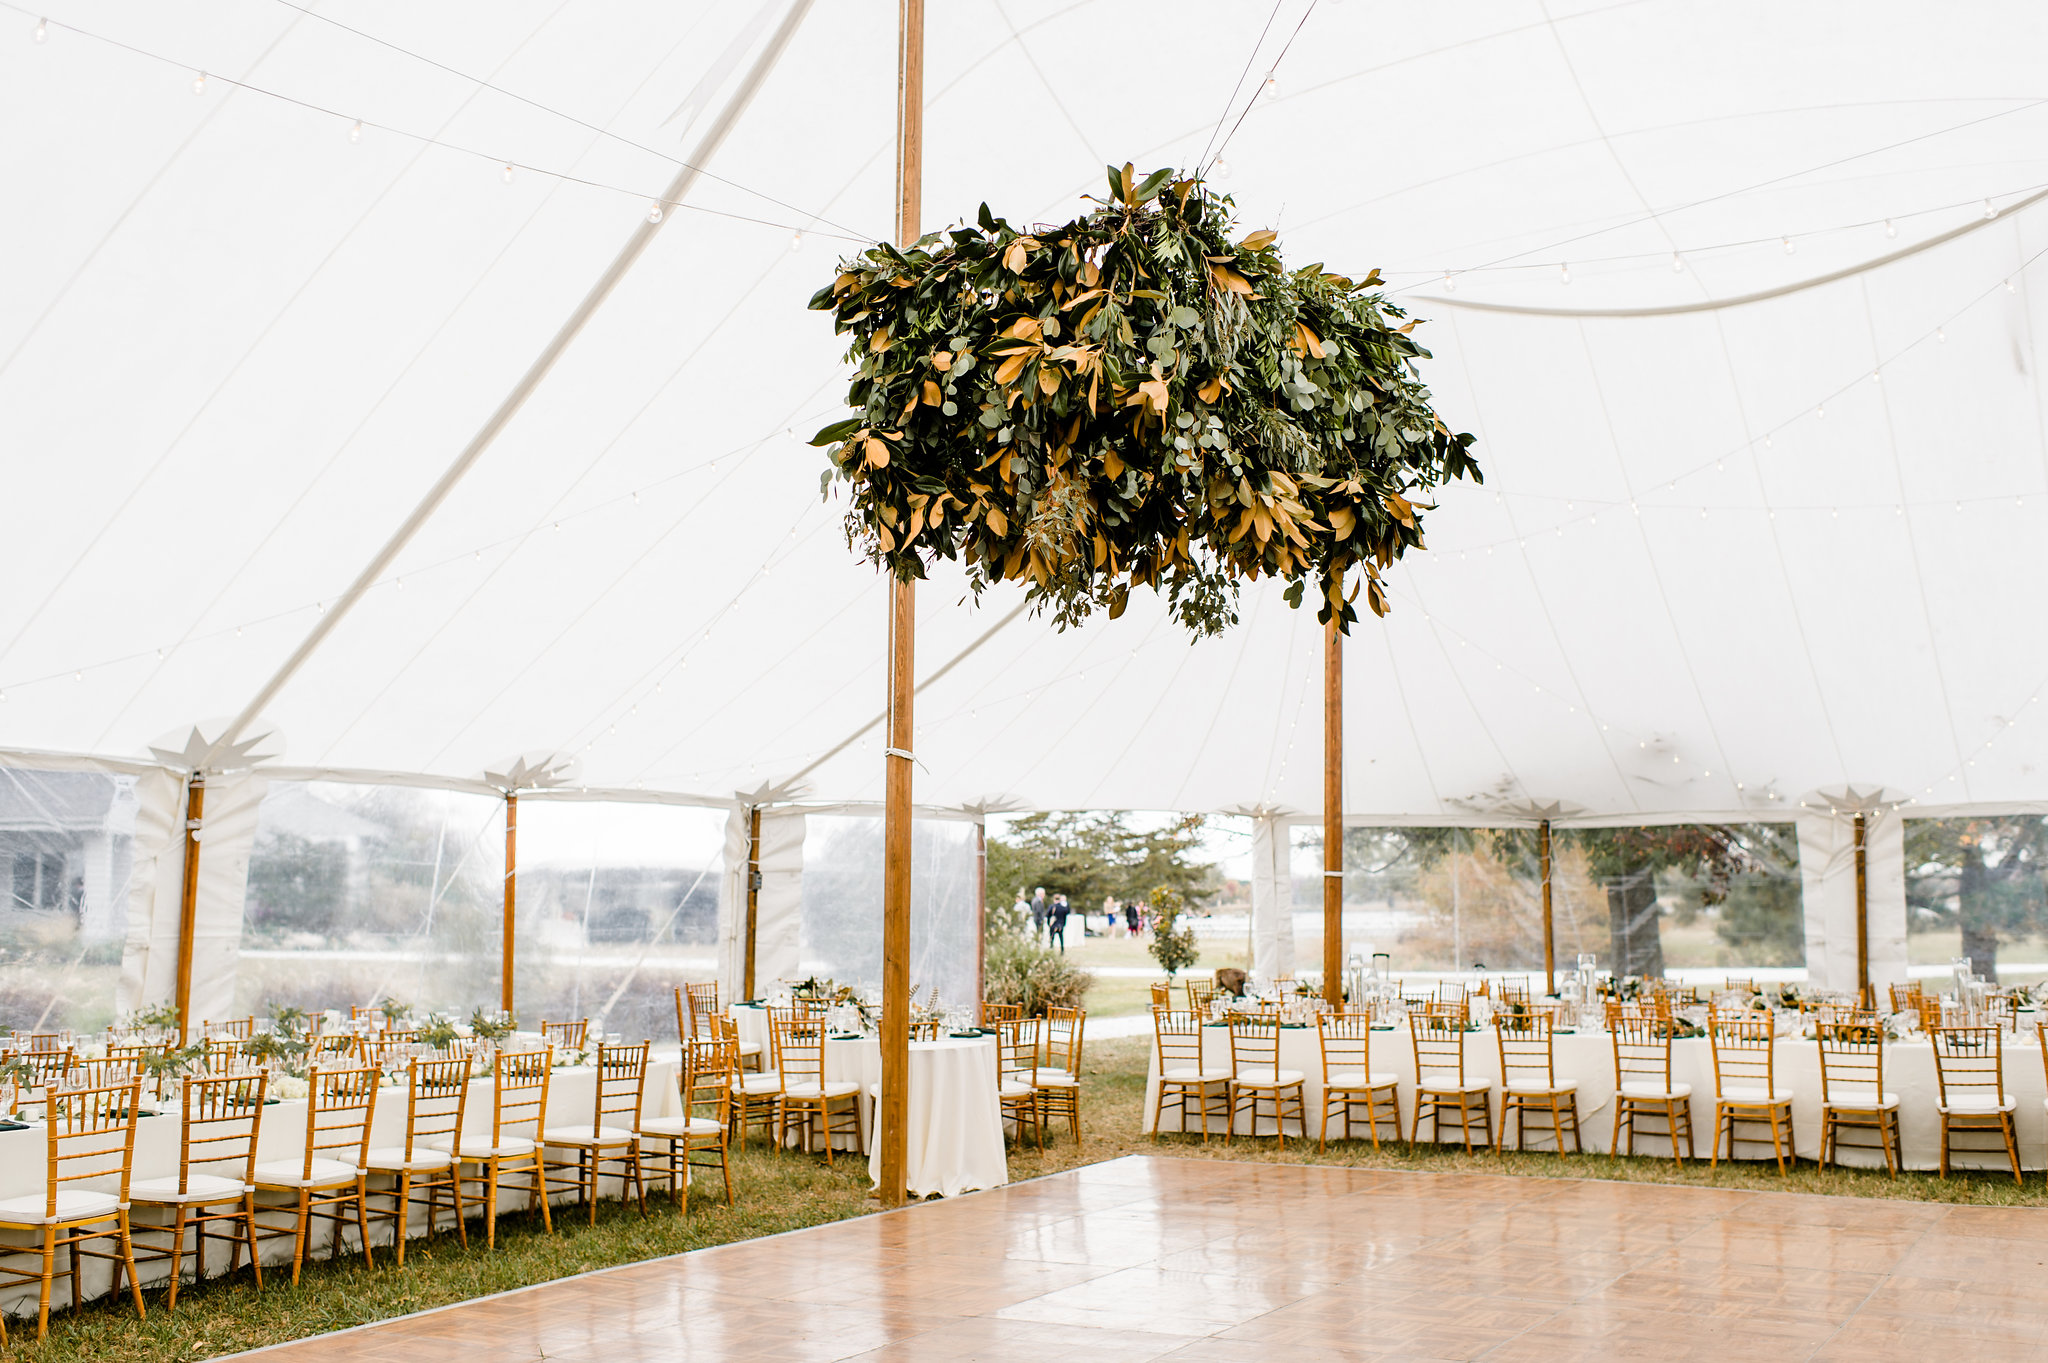 Eucalyptus Leaf Chandelier hanging in Wedding Reception tent on Maryland's Eastern Shore